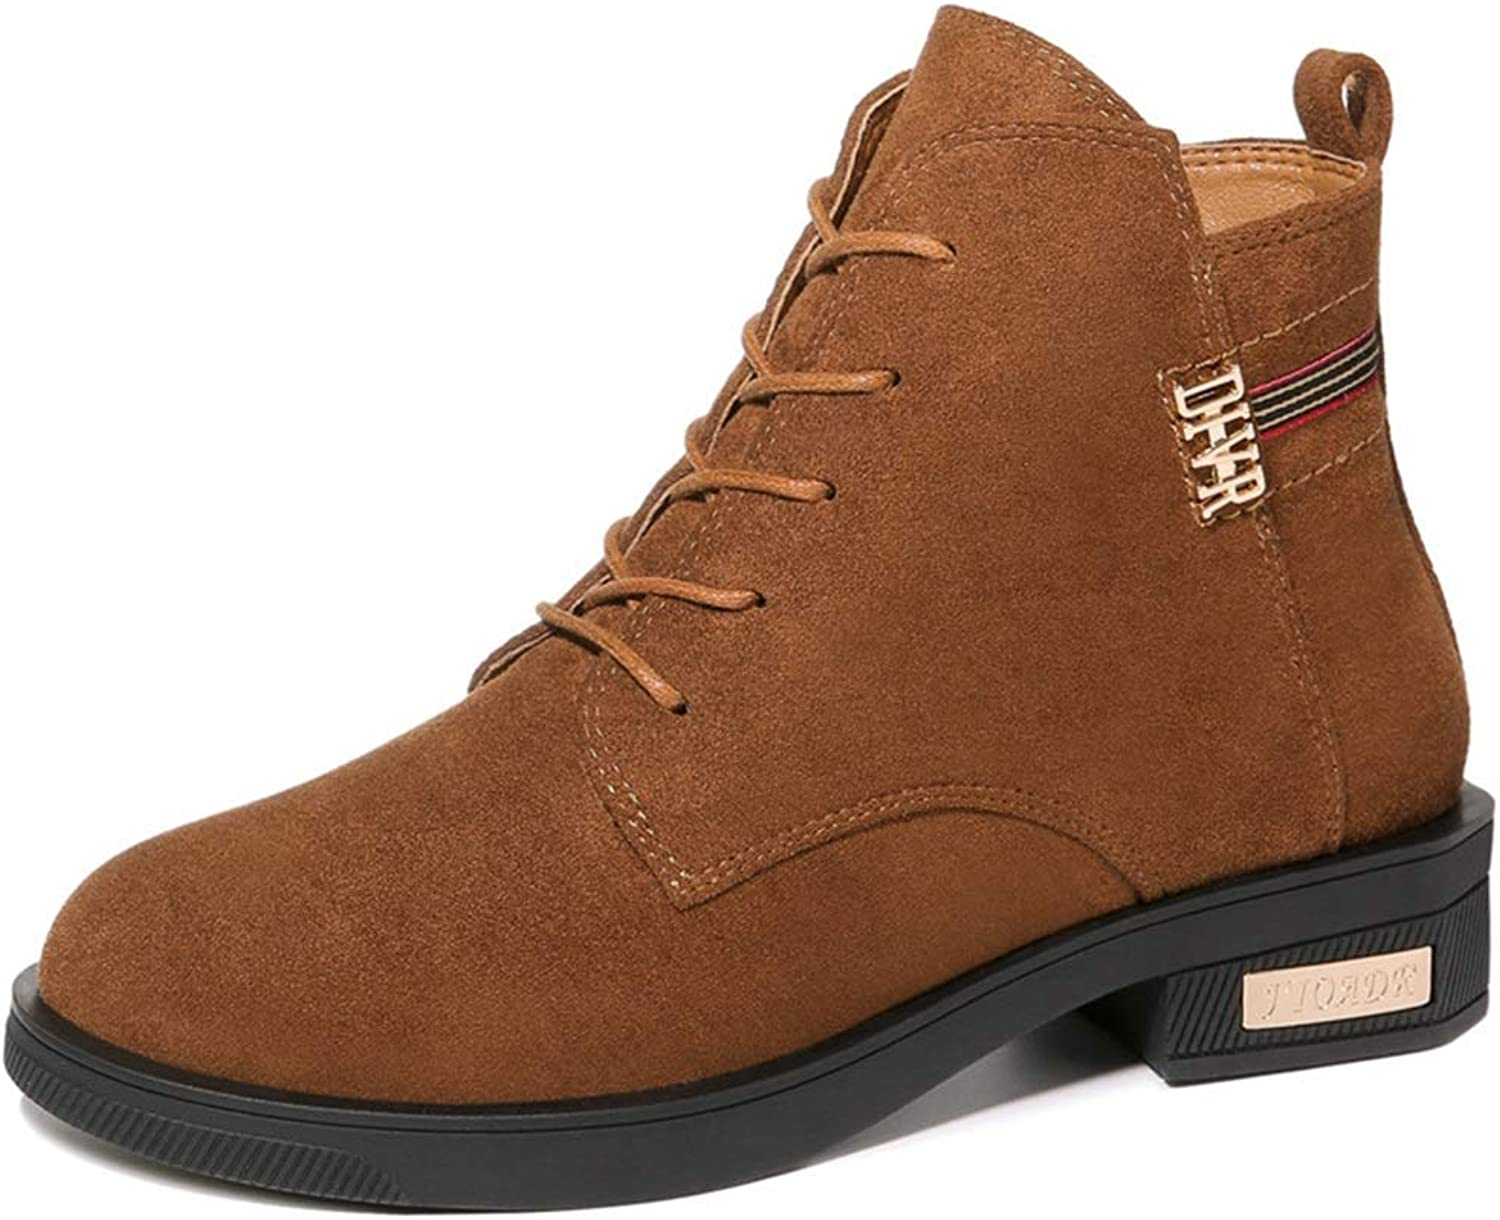 Ladies Booties, Flat Mid Heel Plus Velvet Fang He Lace-up Martin Boots Women Fall Winter Leather Martin Boots Fashion Boots (color   B, Size   36)